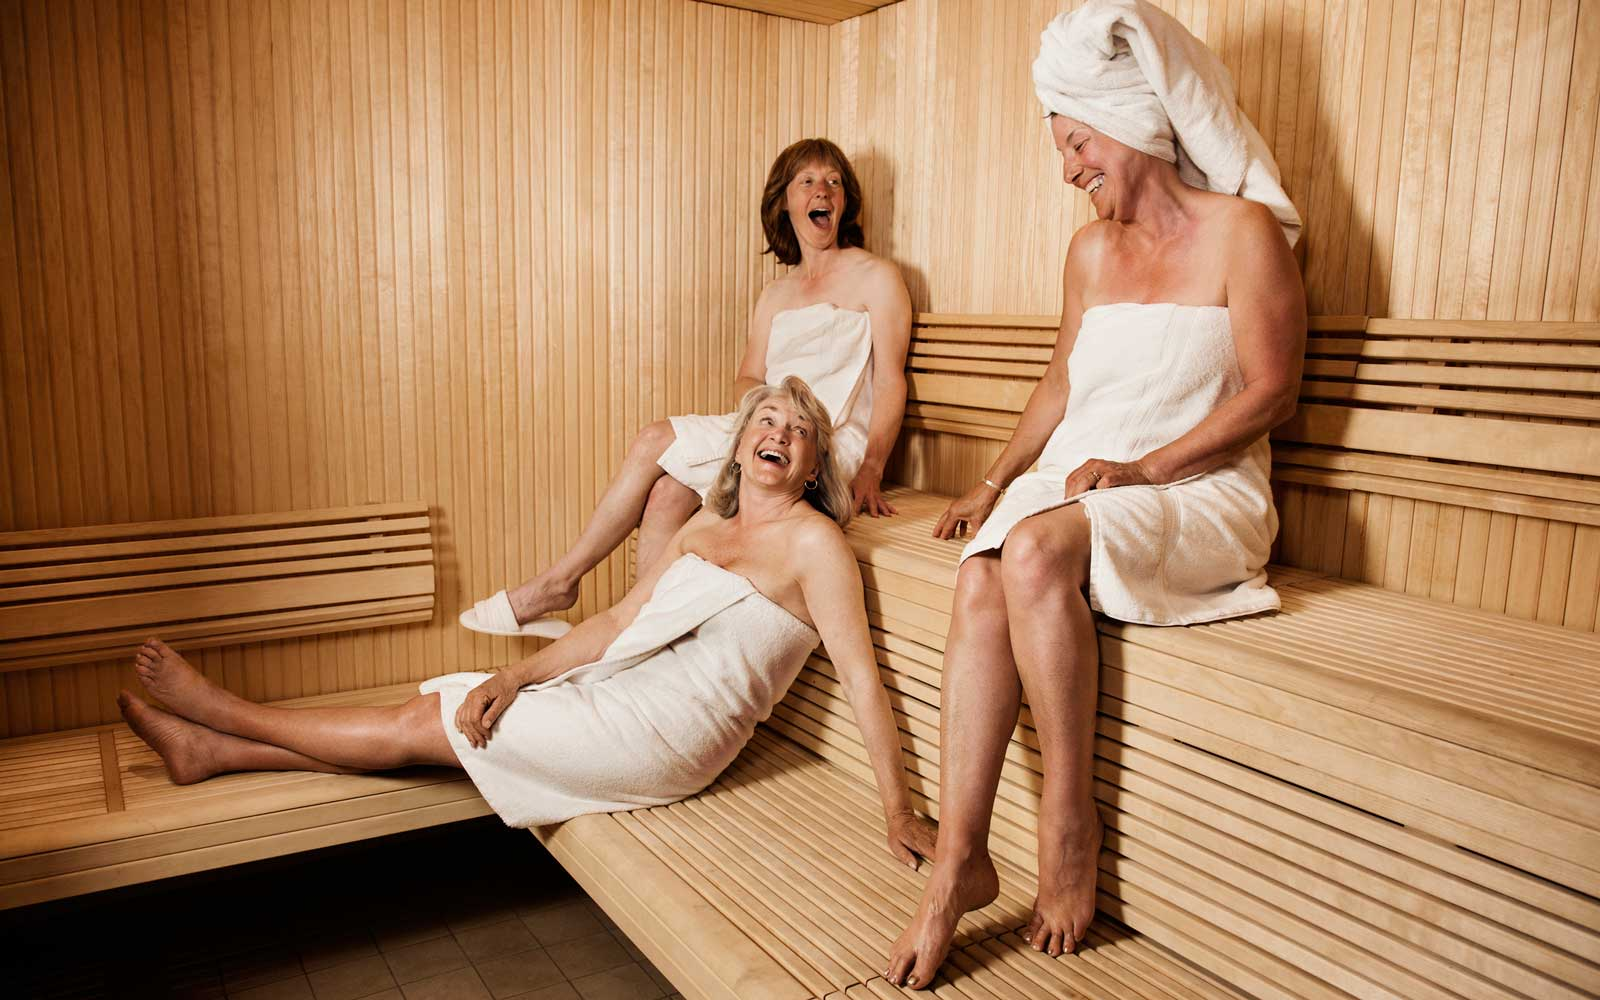 Getting Divorced? This Spa Designed a Weekend Getaway for You